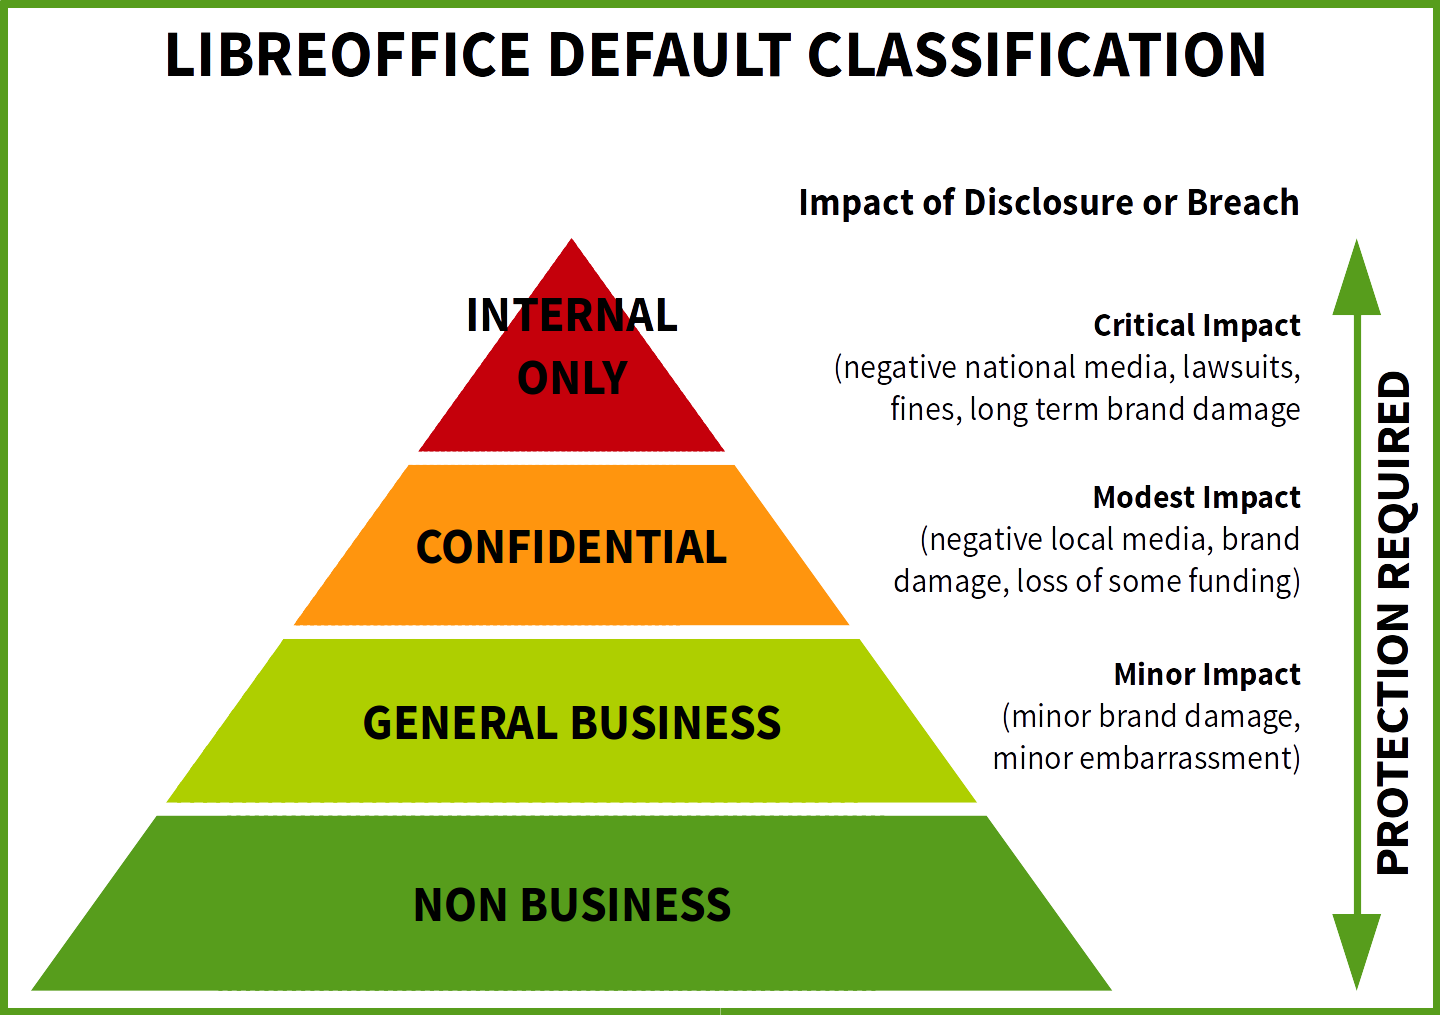 LibreOffice classification